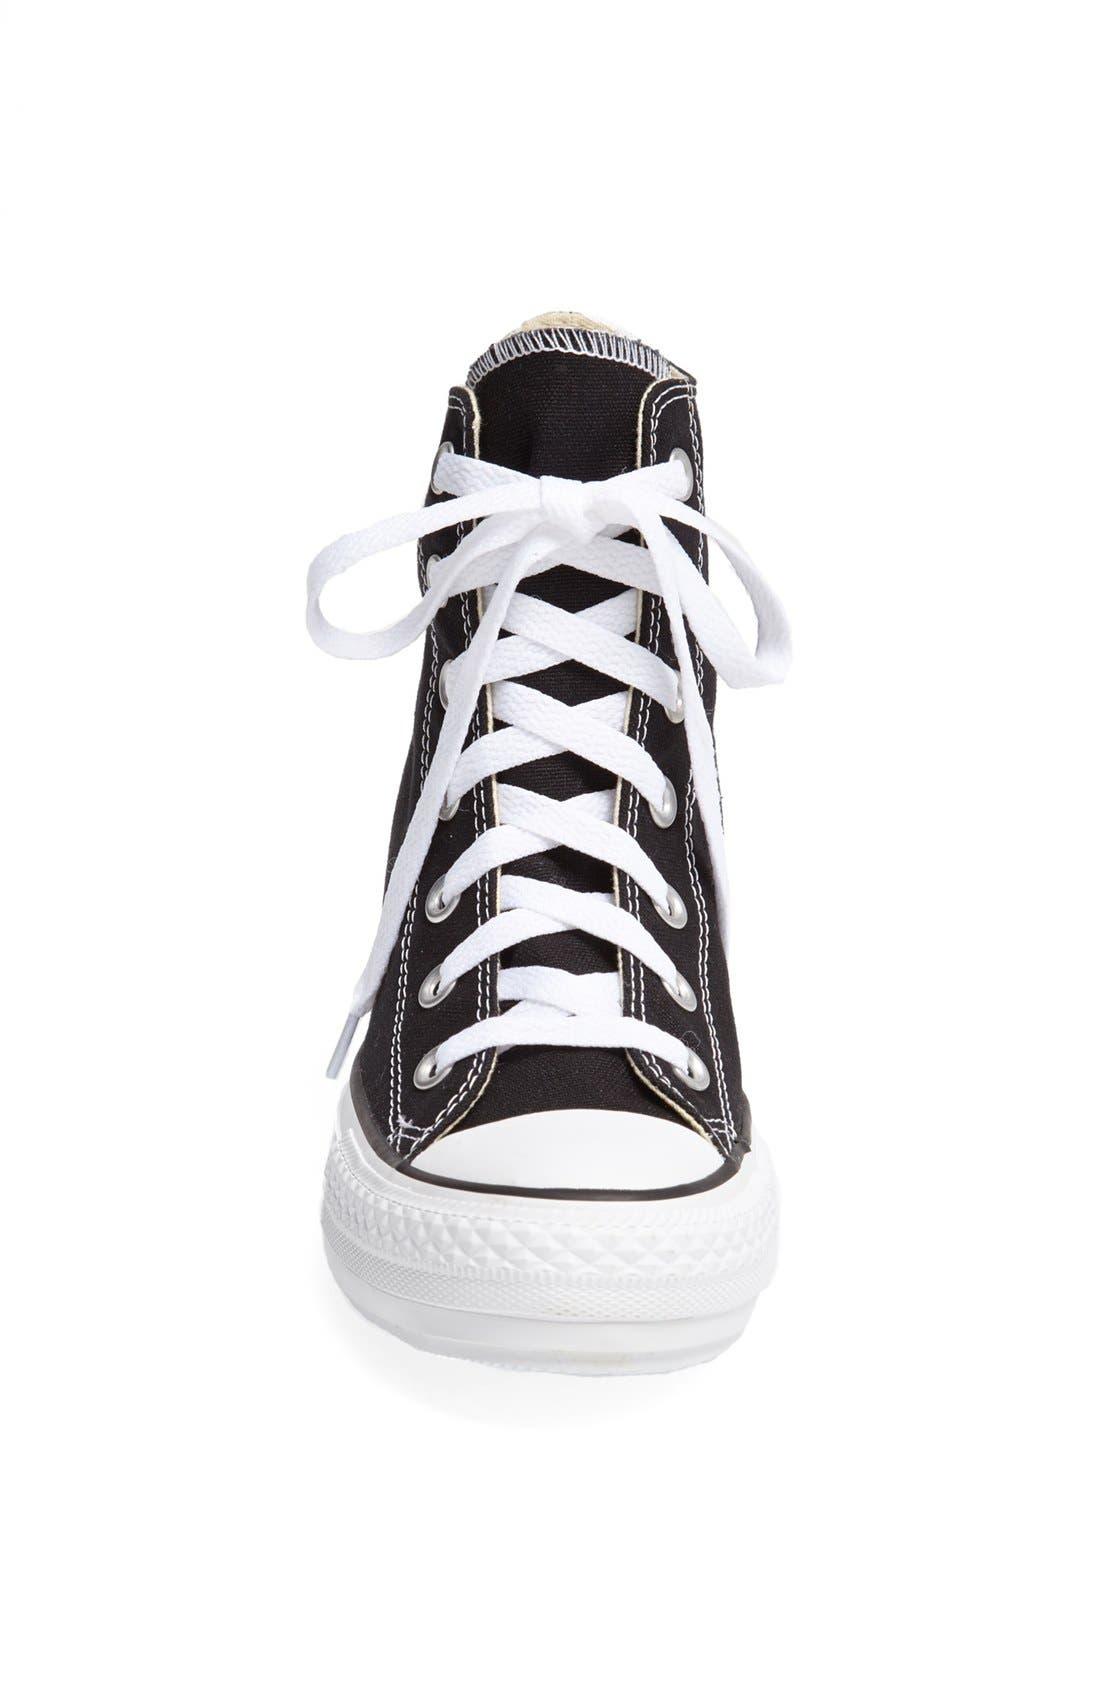 Chuck Taylor<sup>®</sup> All Star<sup>®</sup> Hidden Wedge Platform High-Top Sneaker,                             Alternate thumbnail 4, color,                             001